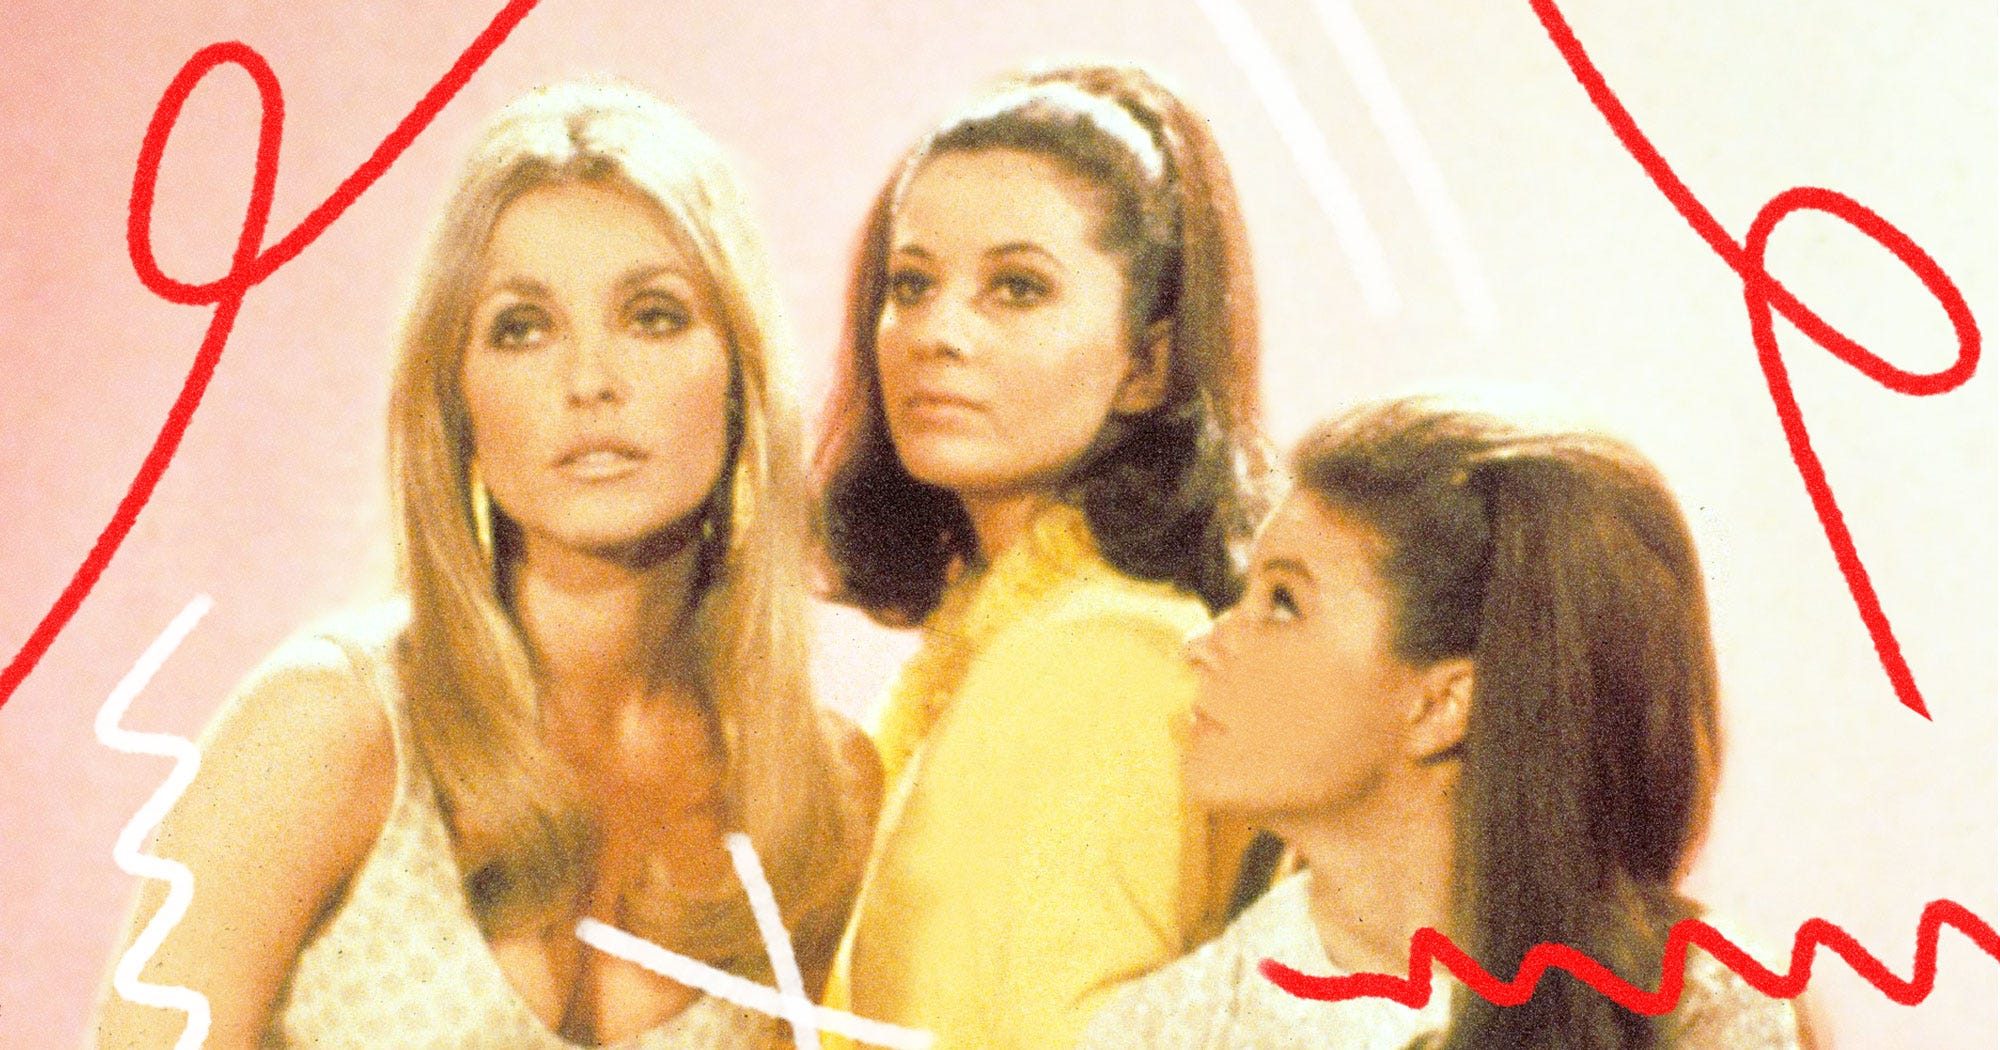 Valley Of The Dolls Is A Sexy Piece Of Gossip With A Dark, Important Message